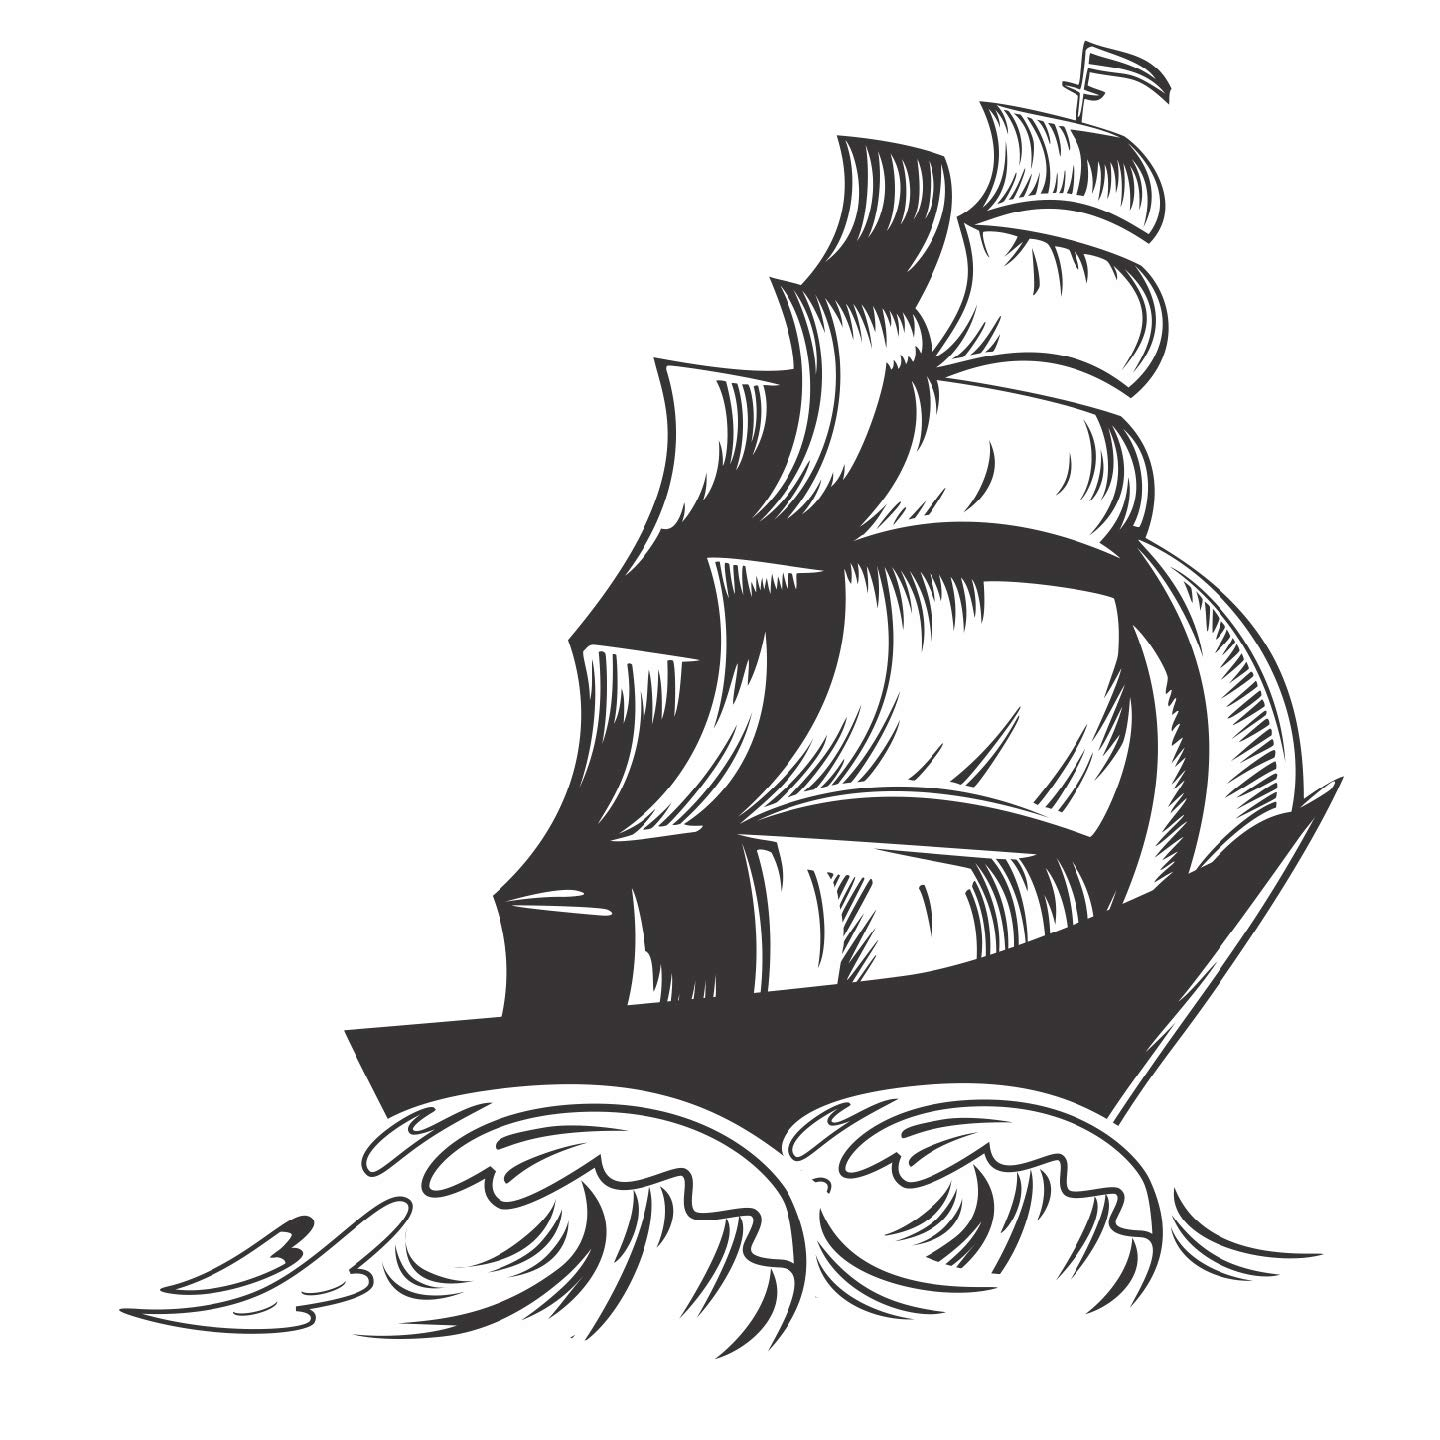 Buy decals design sailors ship wall sticker pvc vinyl 70 cm x 50 cm black online at low prices in india amazon in